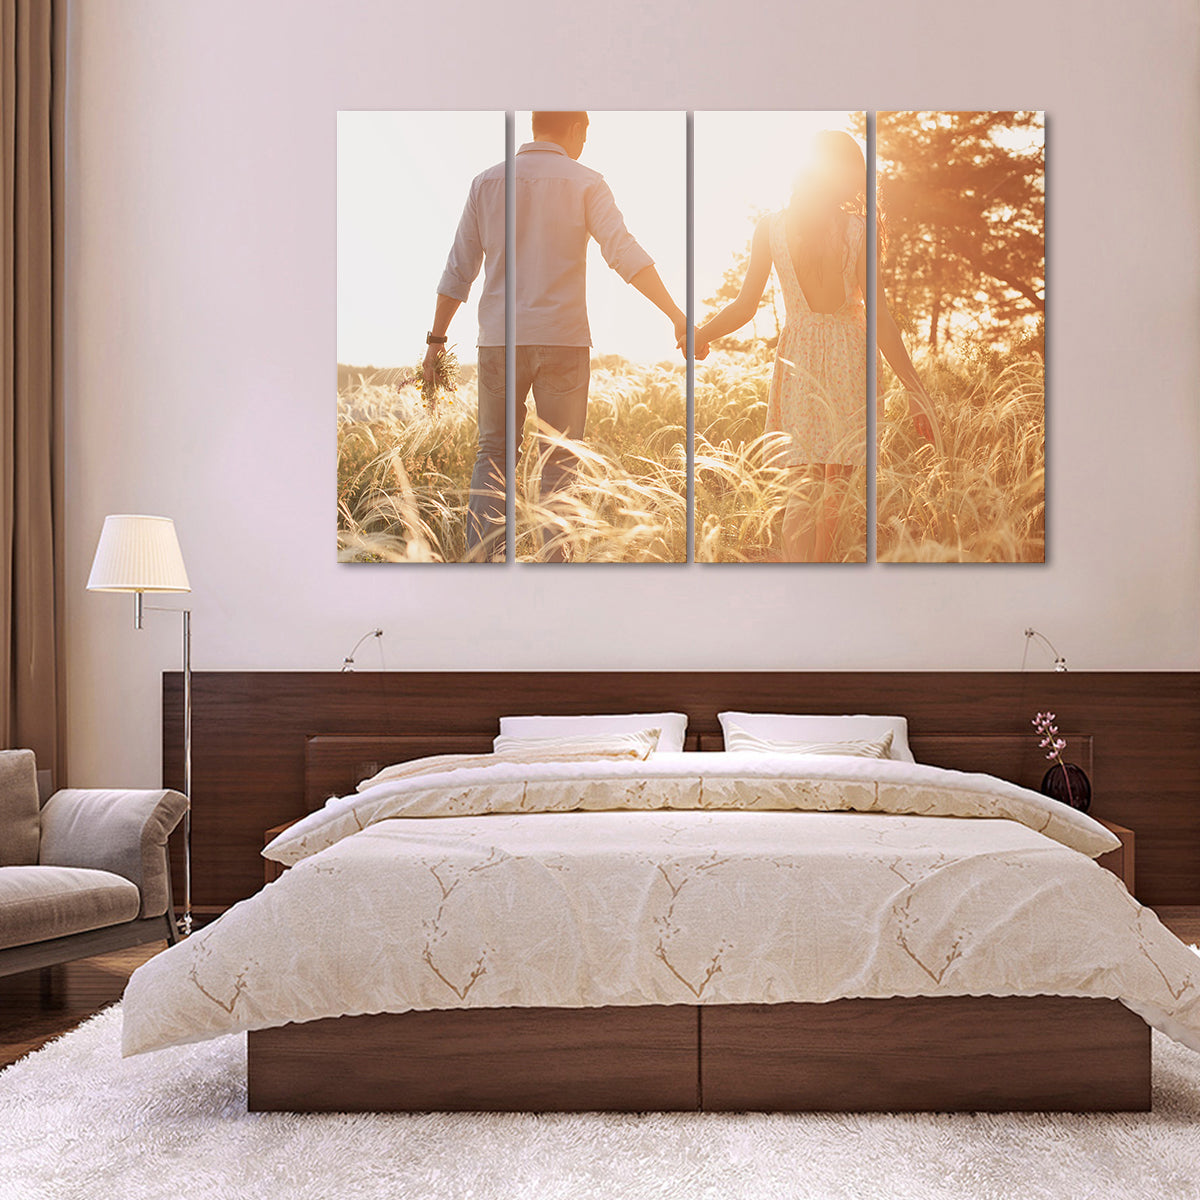 Custom Horizontal Canvas Photo Prints